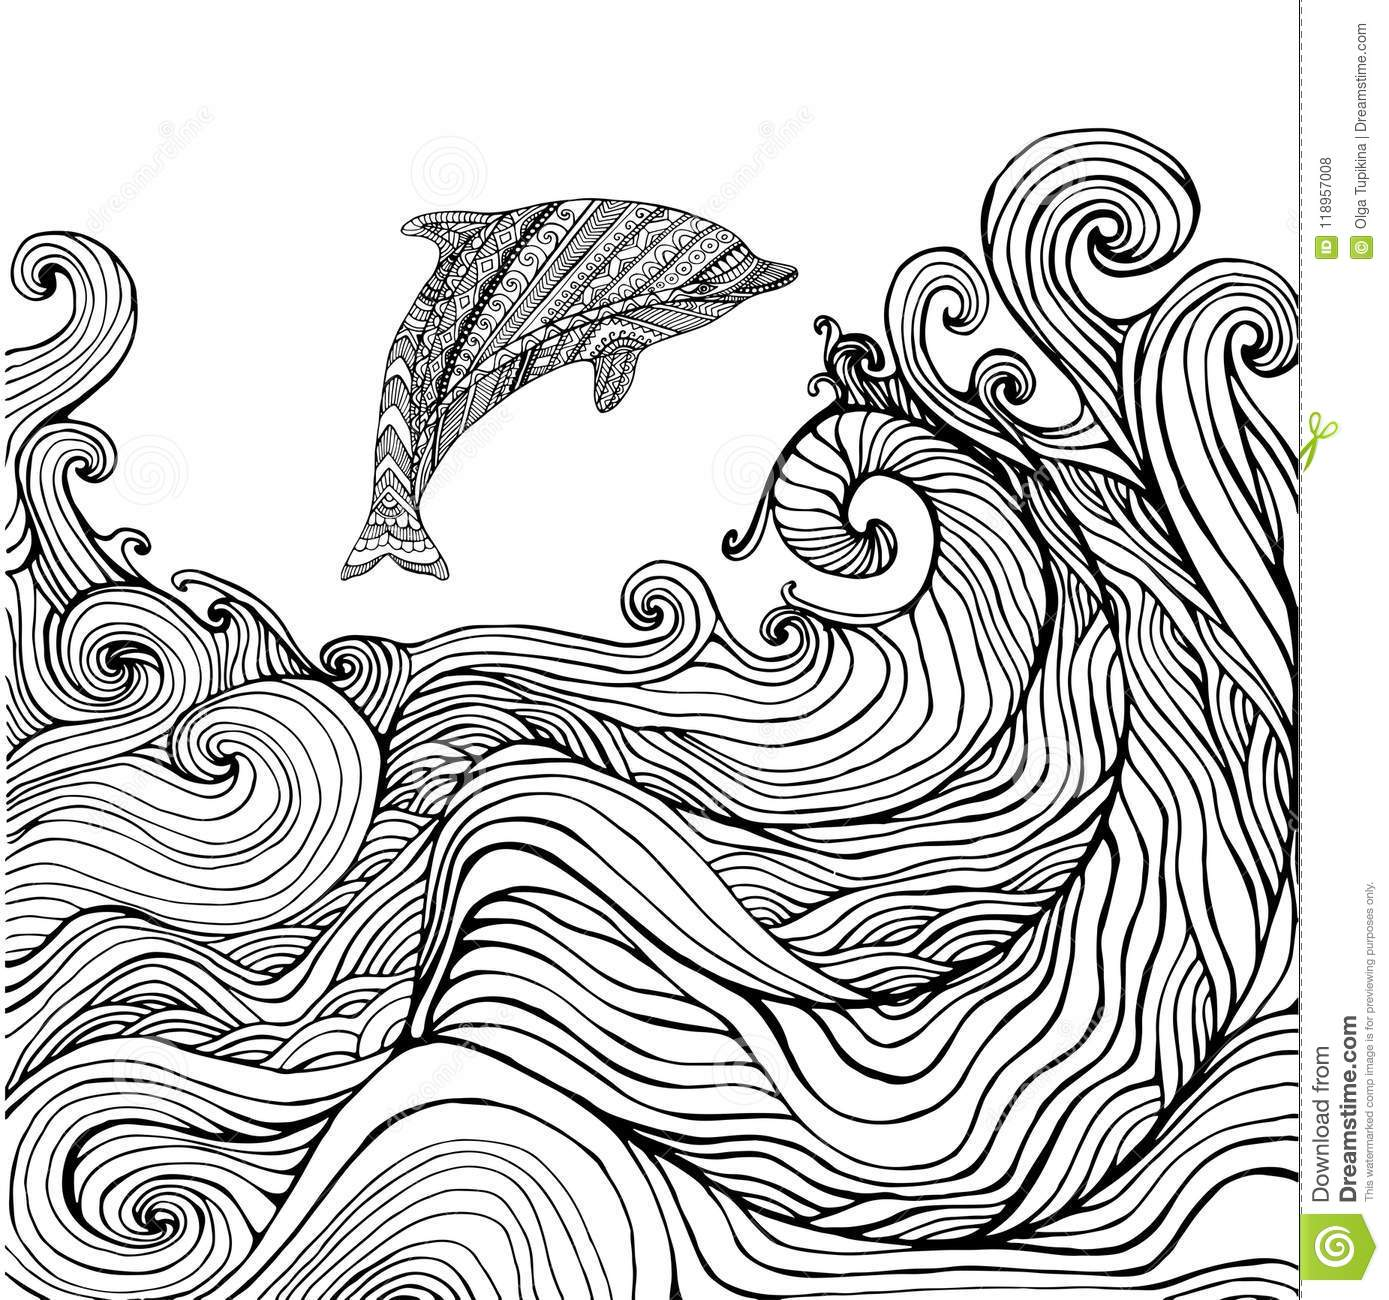 Dolphin And Ocean Waves Coloring Page For Children And